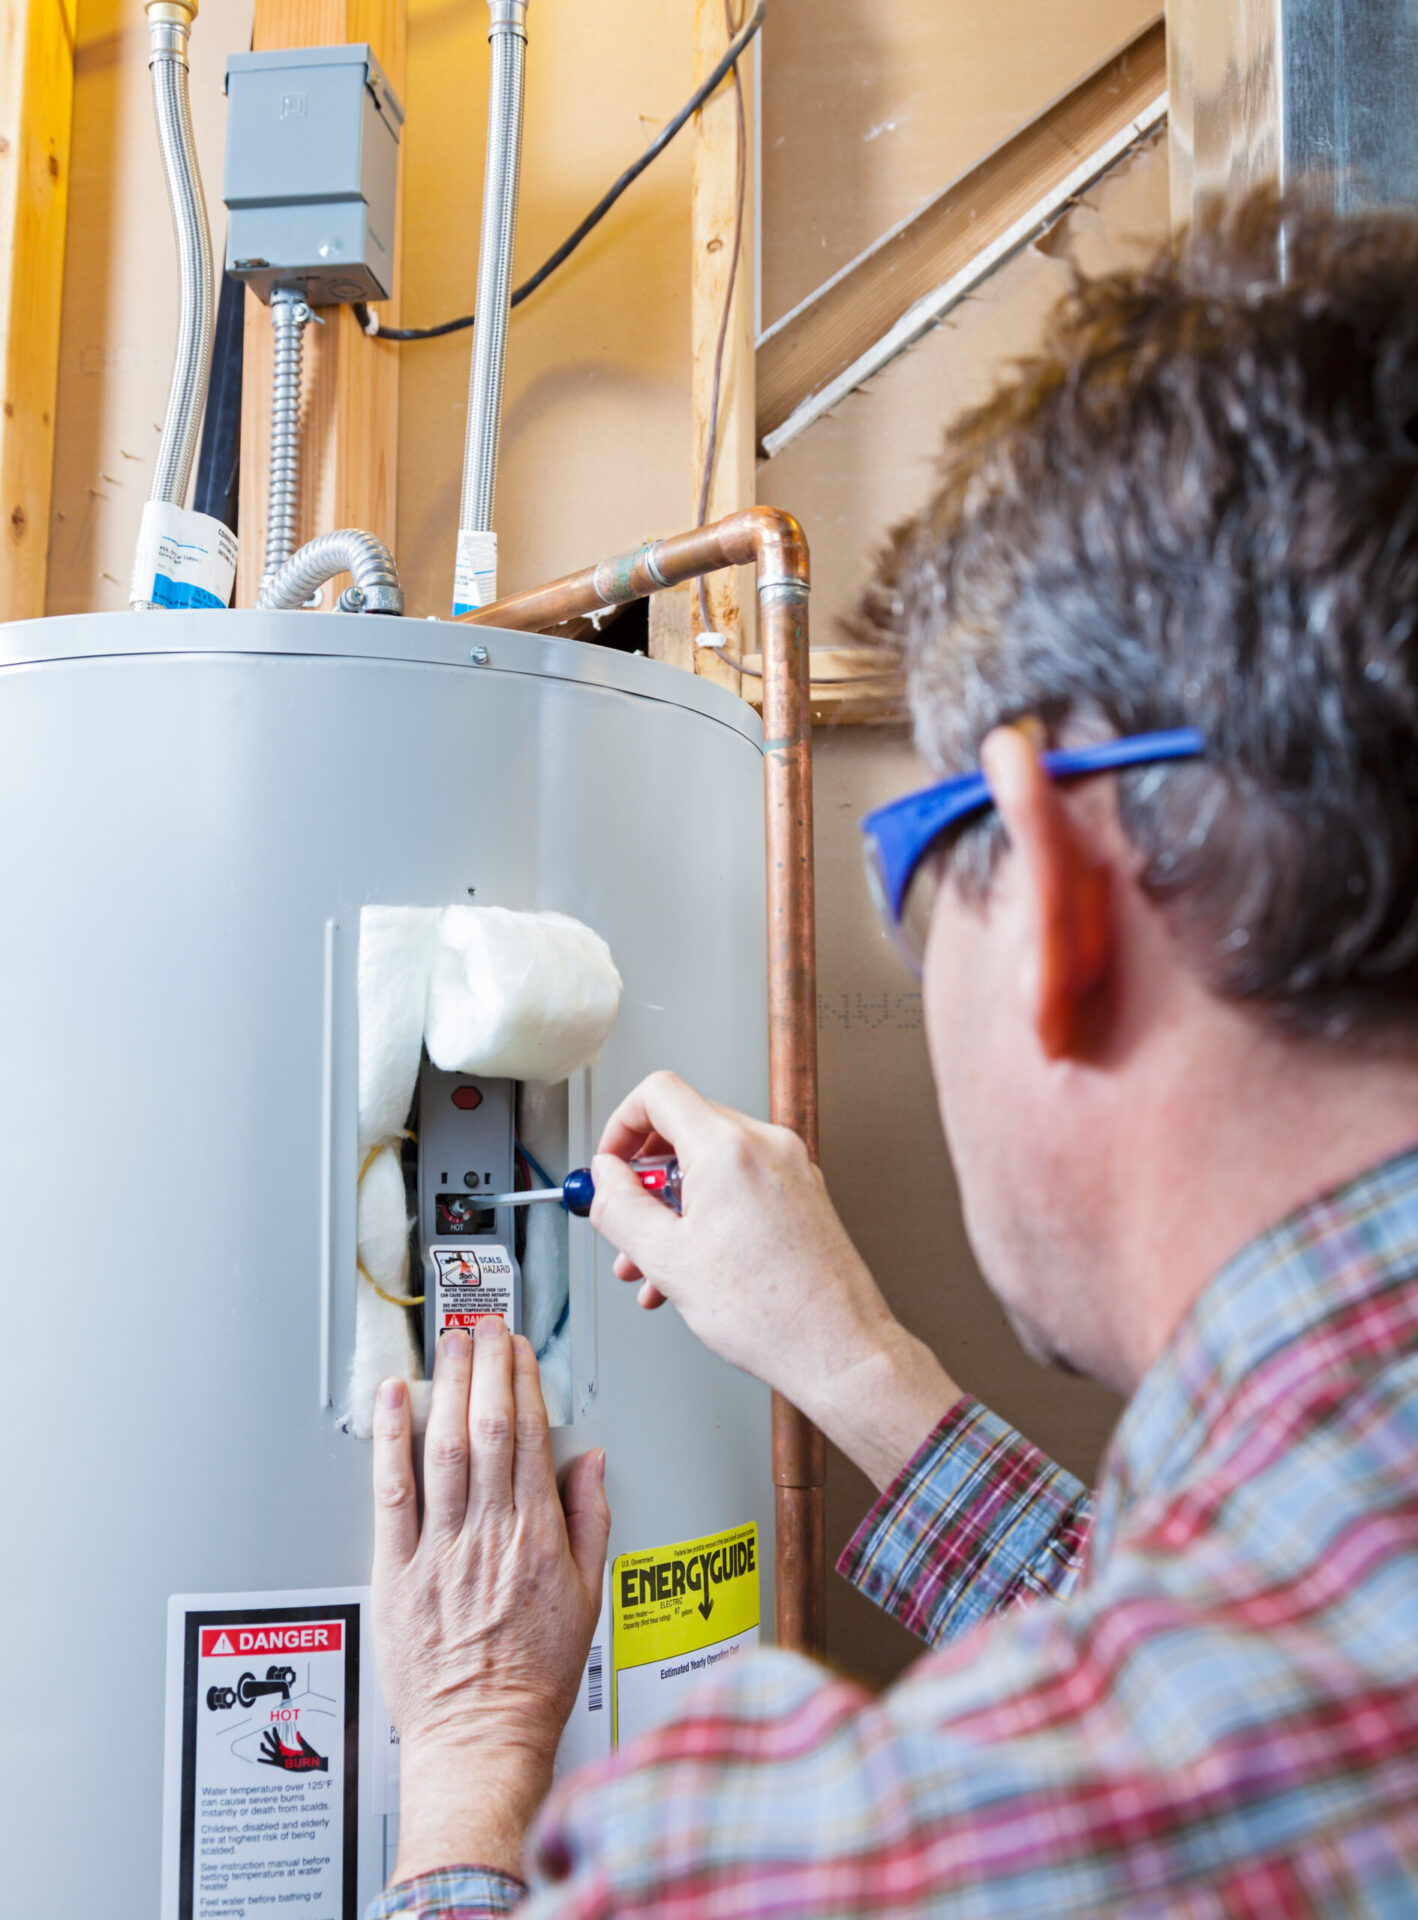 A technician is performing maintenance on a residential water heater